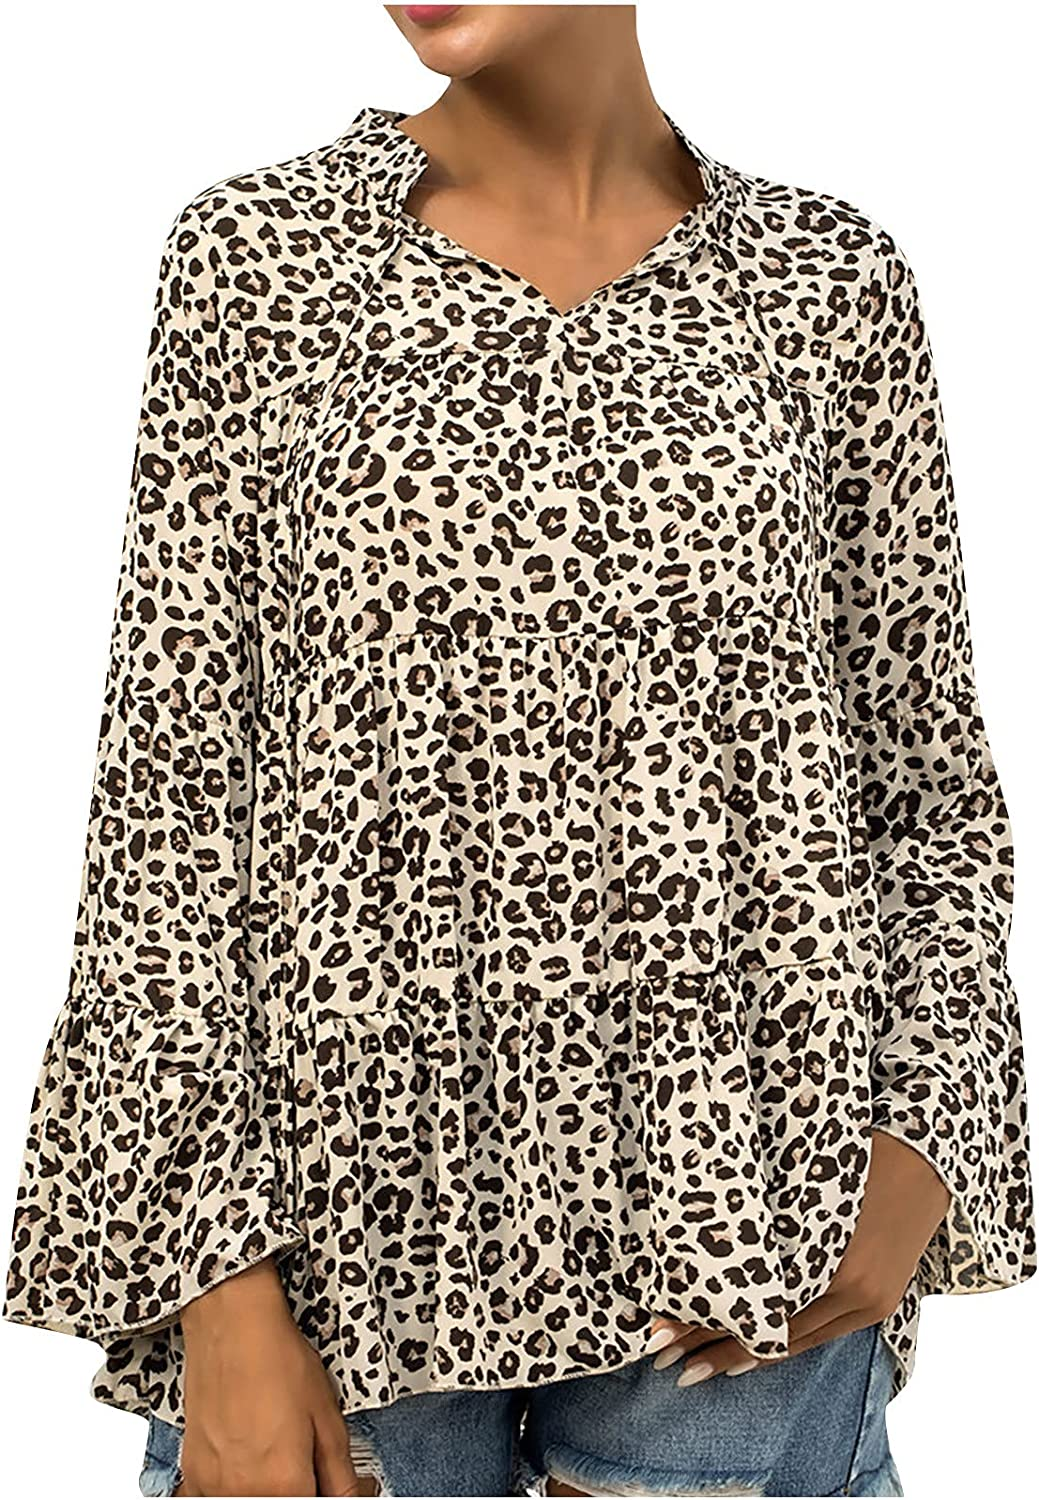 JUSTMYTOP Women's Leopard Print V-Neck Lace-up Blouse Flared Long Sleeve Loose Shirts Casual Comfortable Tunic Tops